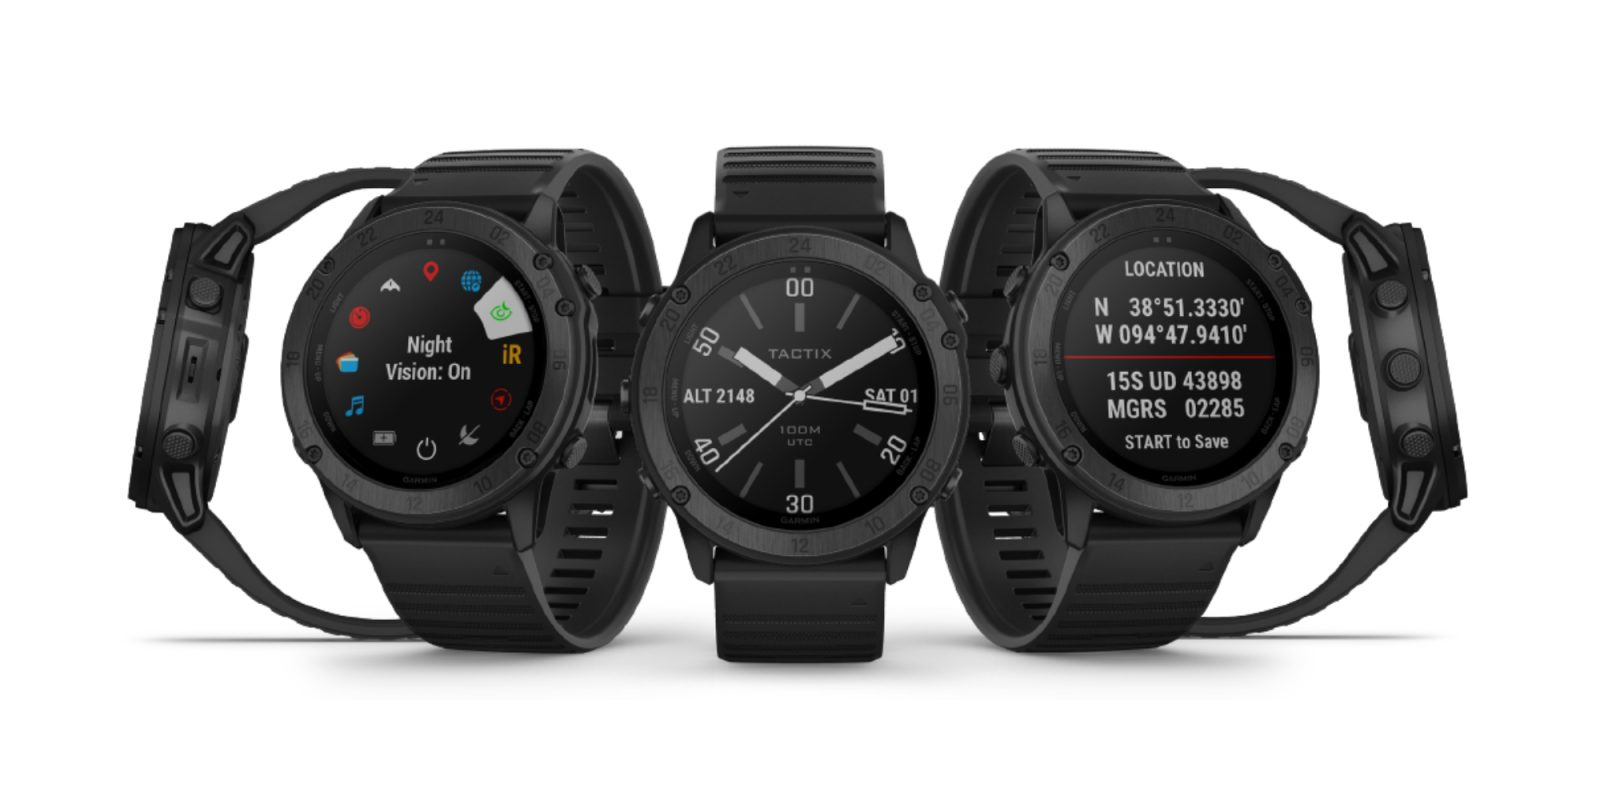 New privacy-focused Garmin tactix Delta Smartwatch has a built-in kill switch